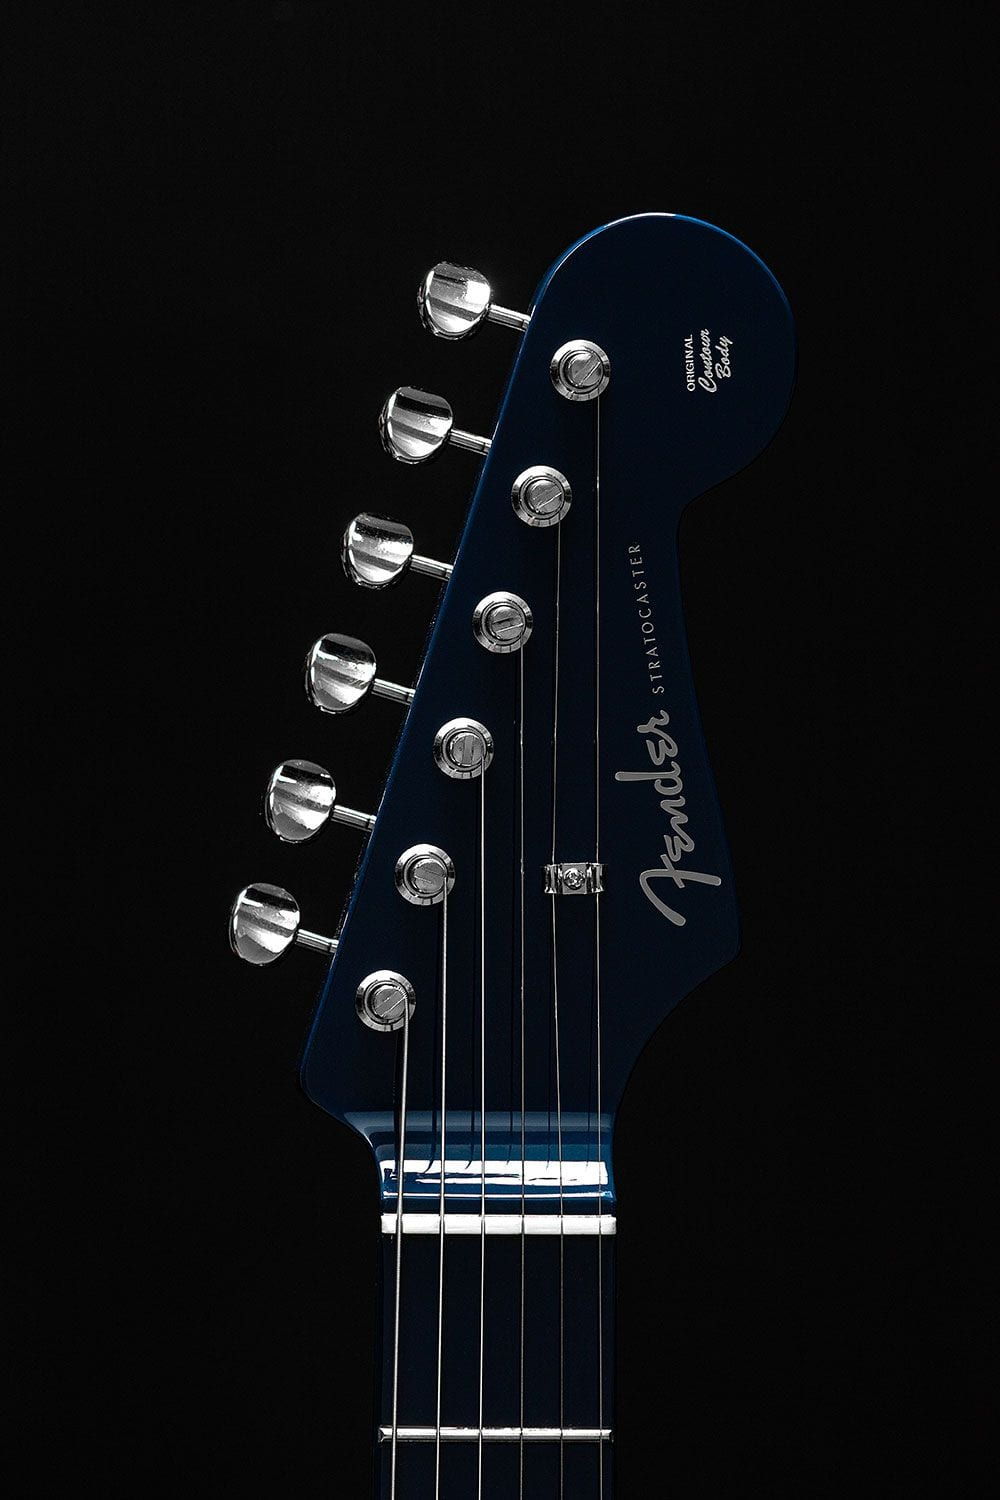 Hypebeast Stratocaster with navy headstock